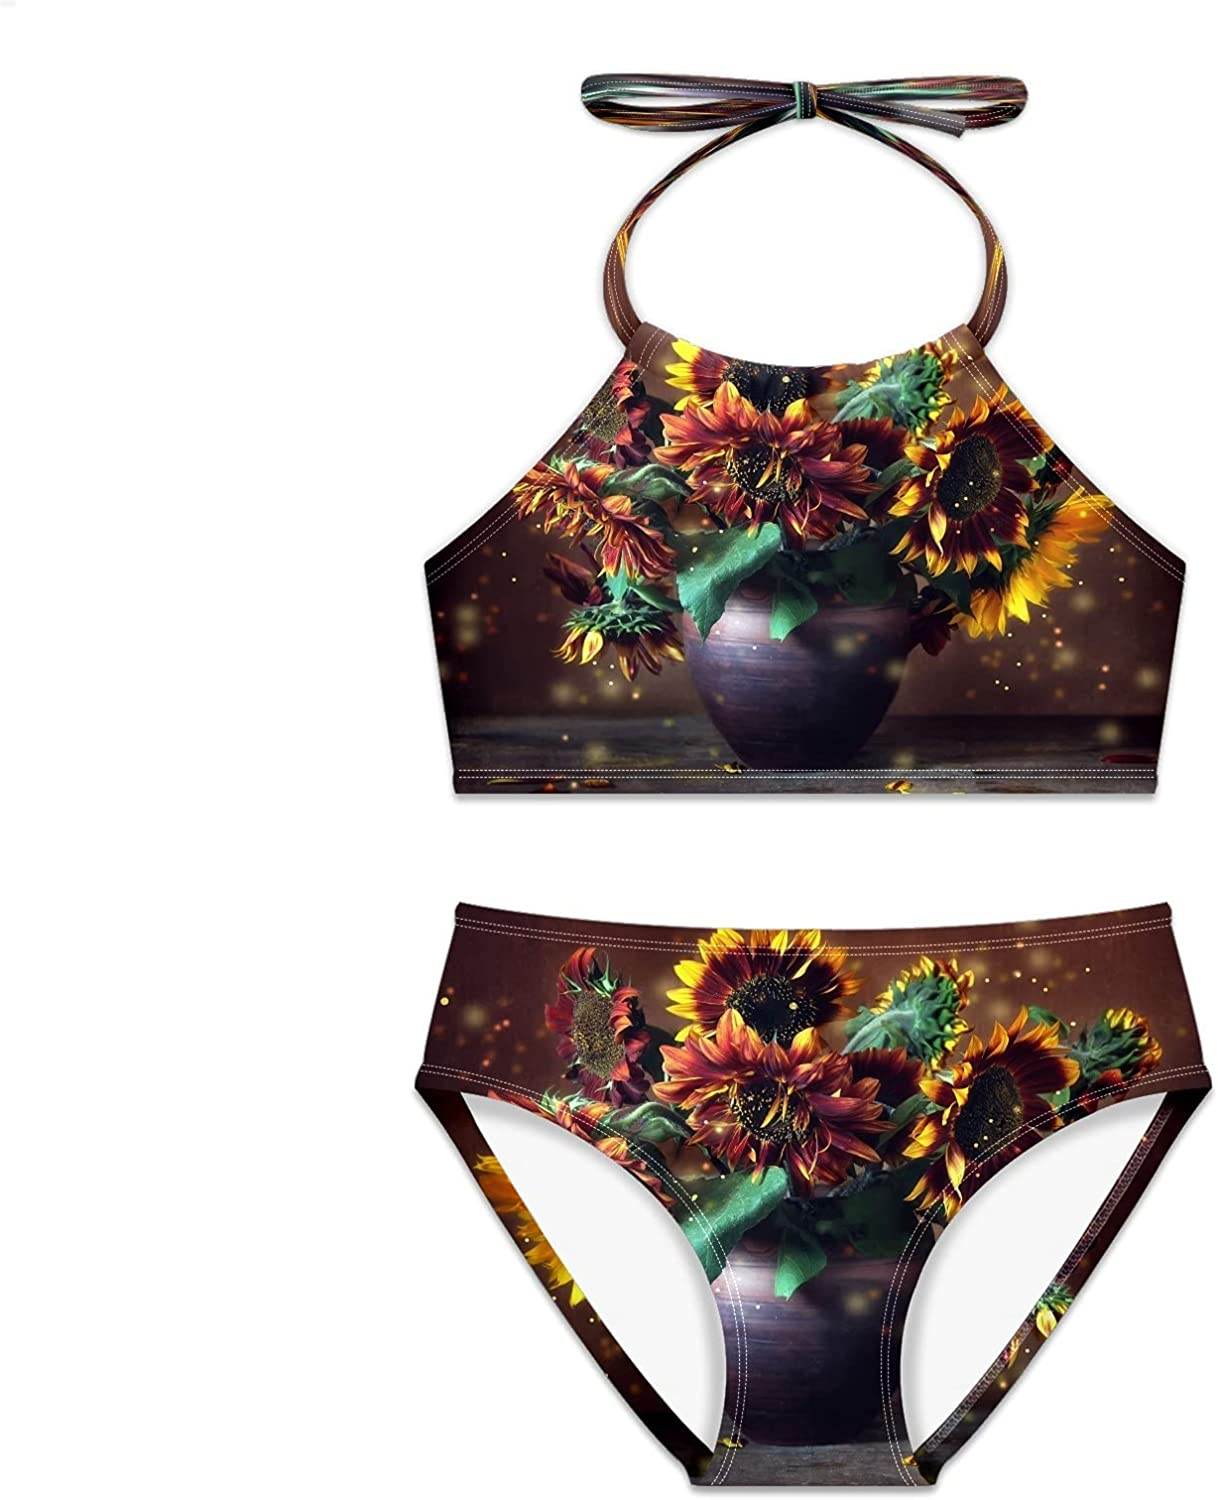 Mealove Complete Gifts Free Shipping Girls Swimsuit Sunflowers Vase Bikini Two Pieces Set